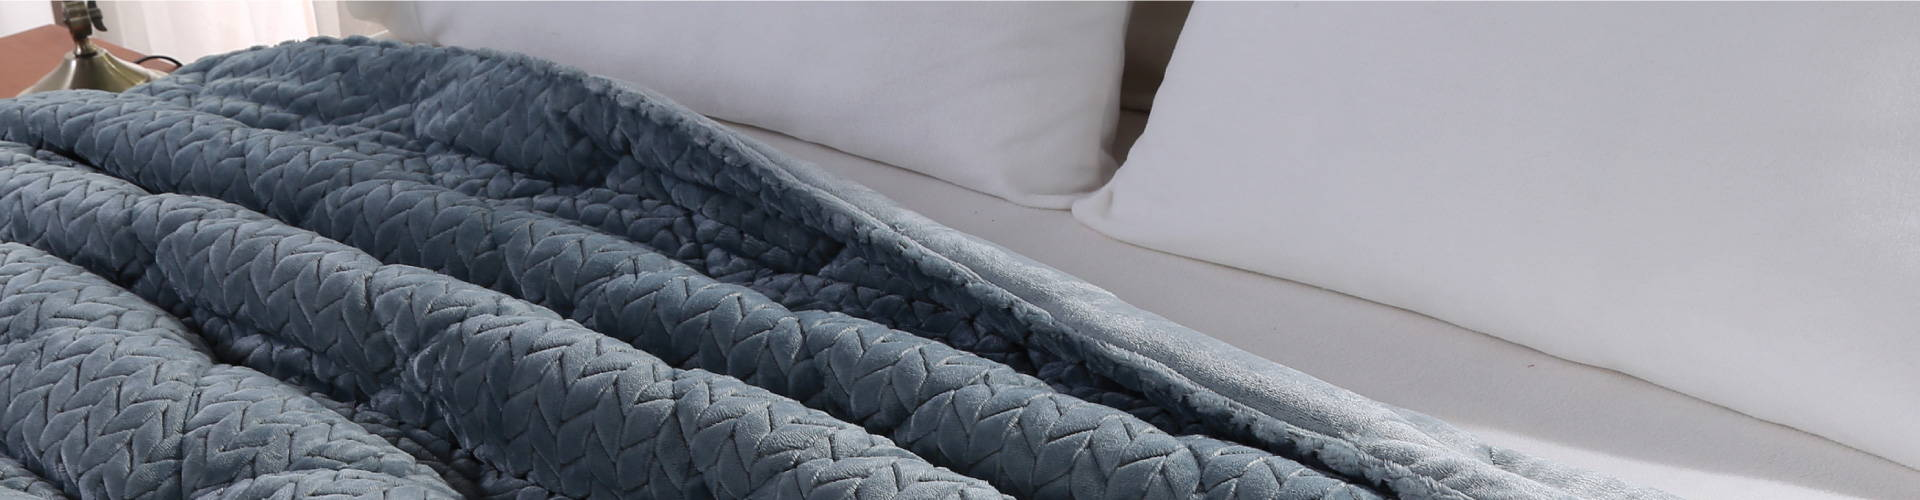 Braided comforter set